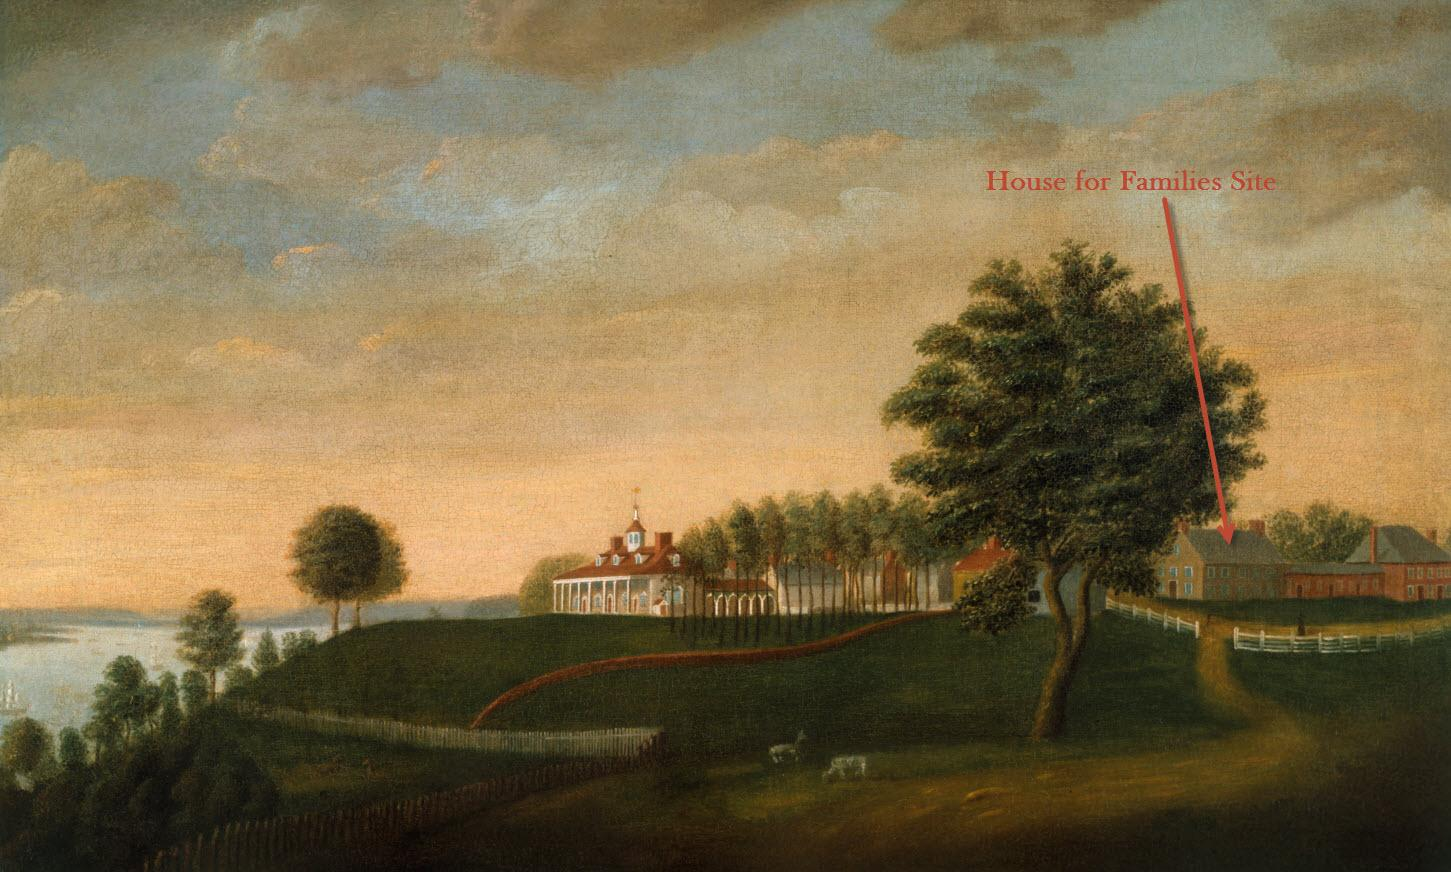 View of the House for Families building as shown in Edward Savage's East Front of Mount Vernon painting (Mount Vernon Ladies' Association)